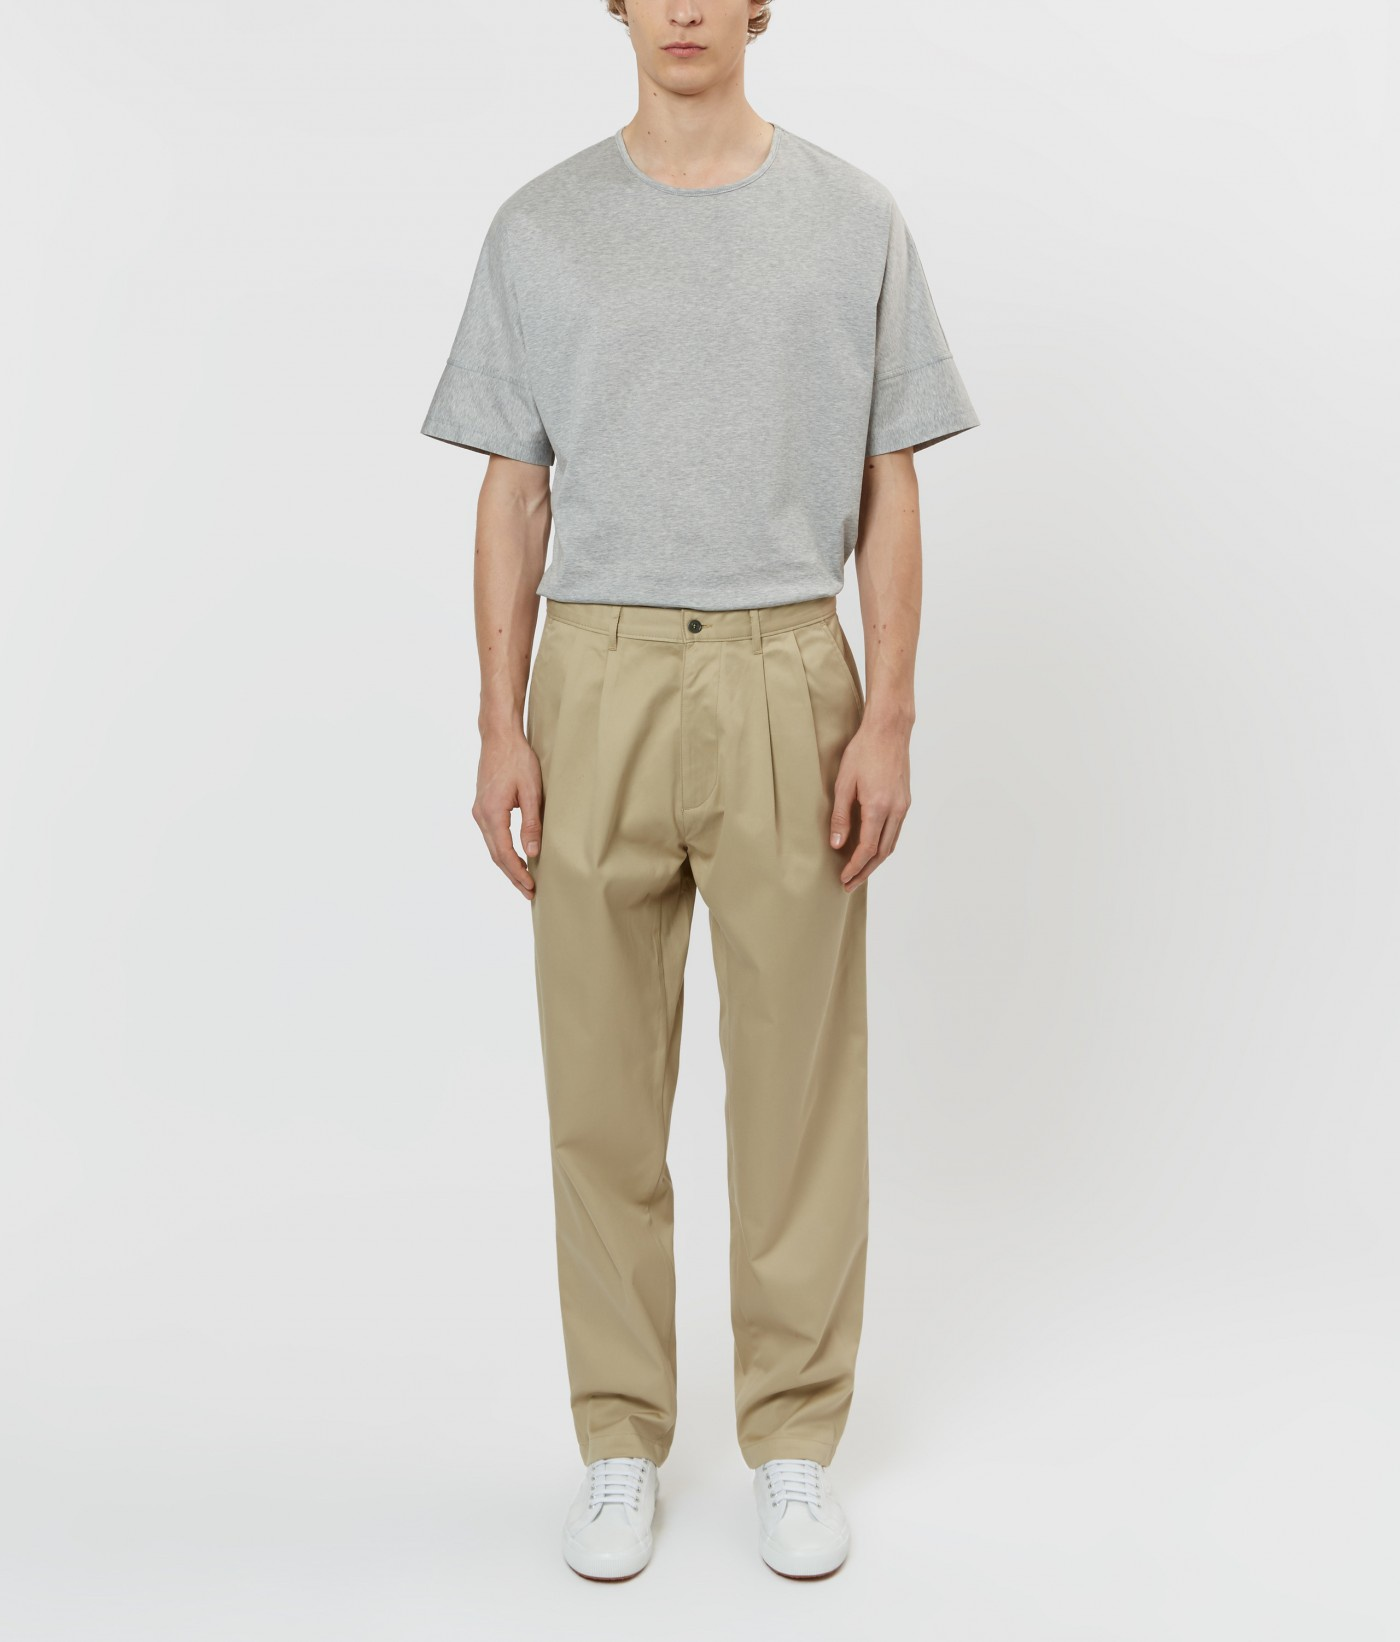 E. Tautz Khaki Pleated Chino